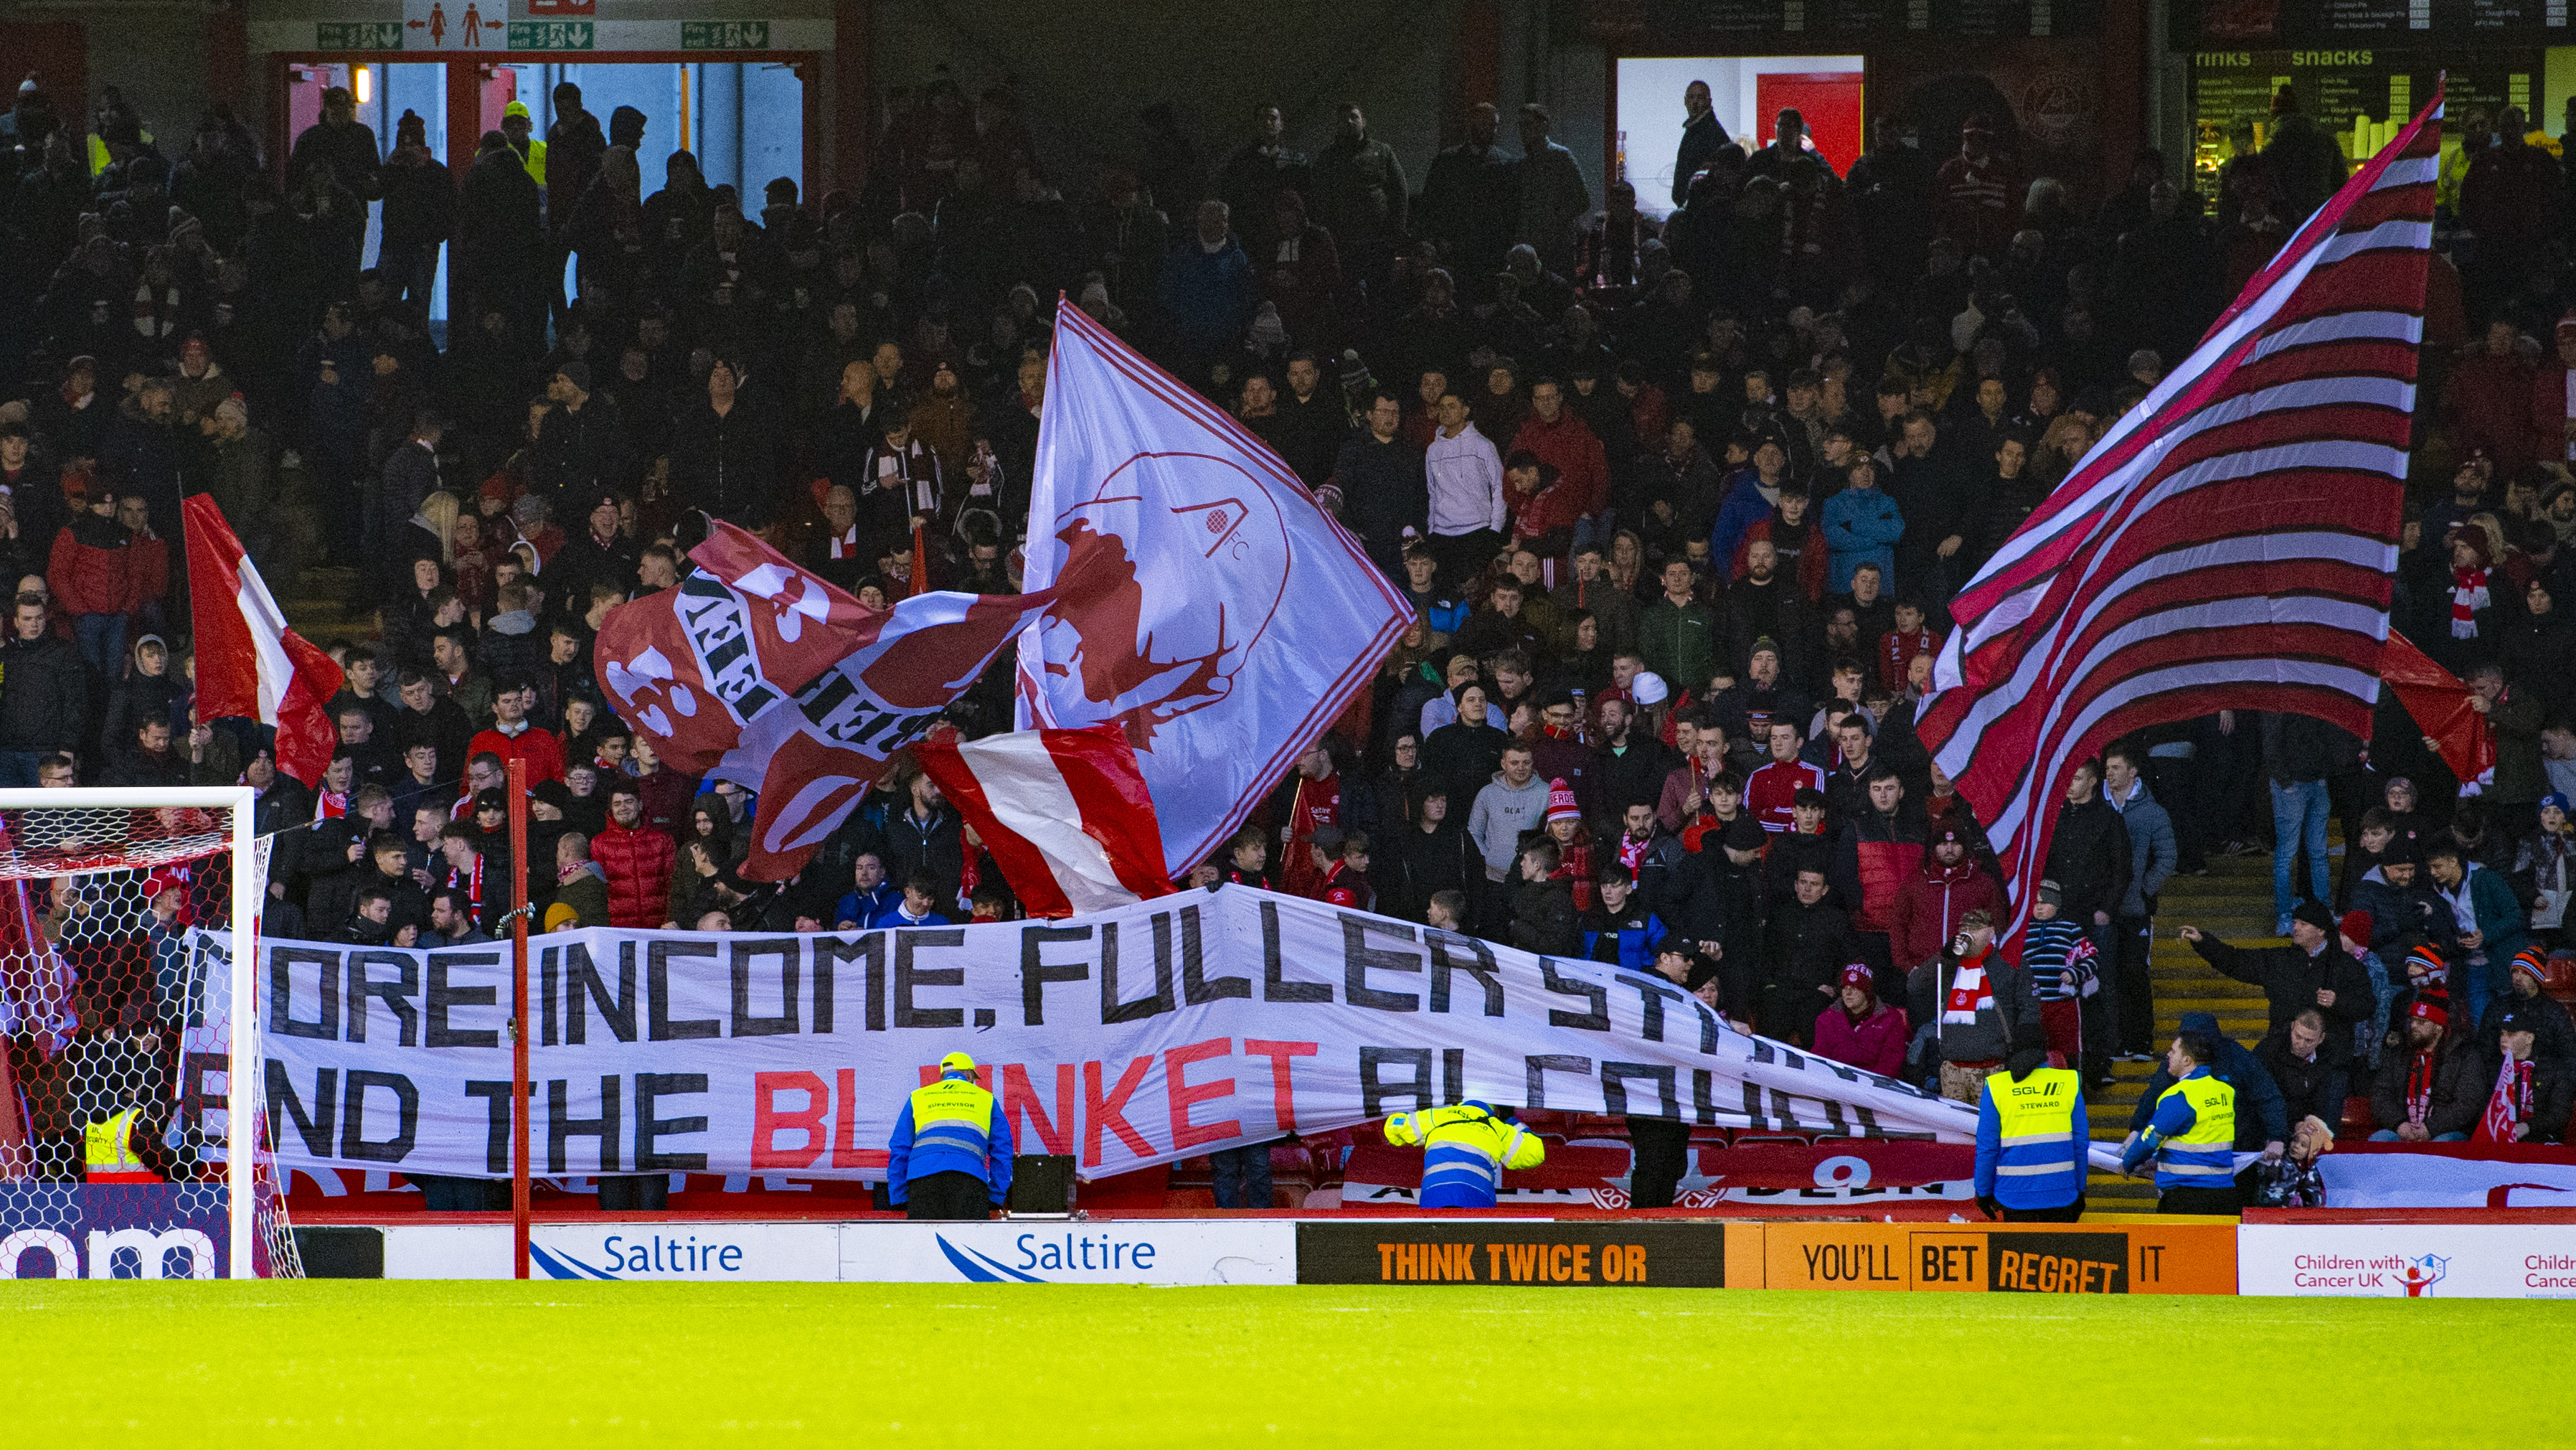 The Dons fans have rallied behind the club.